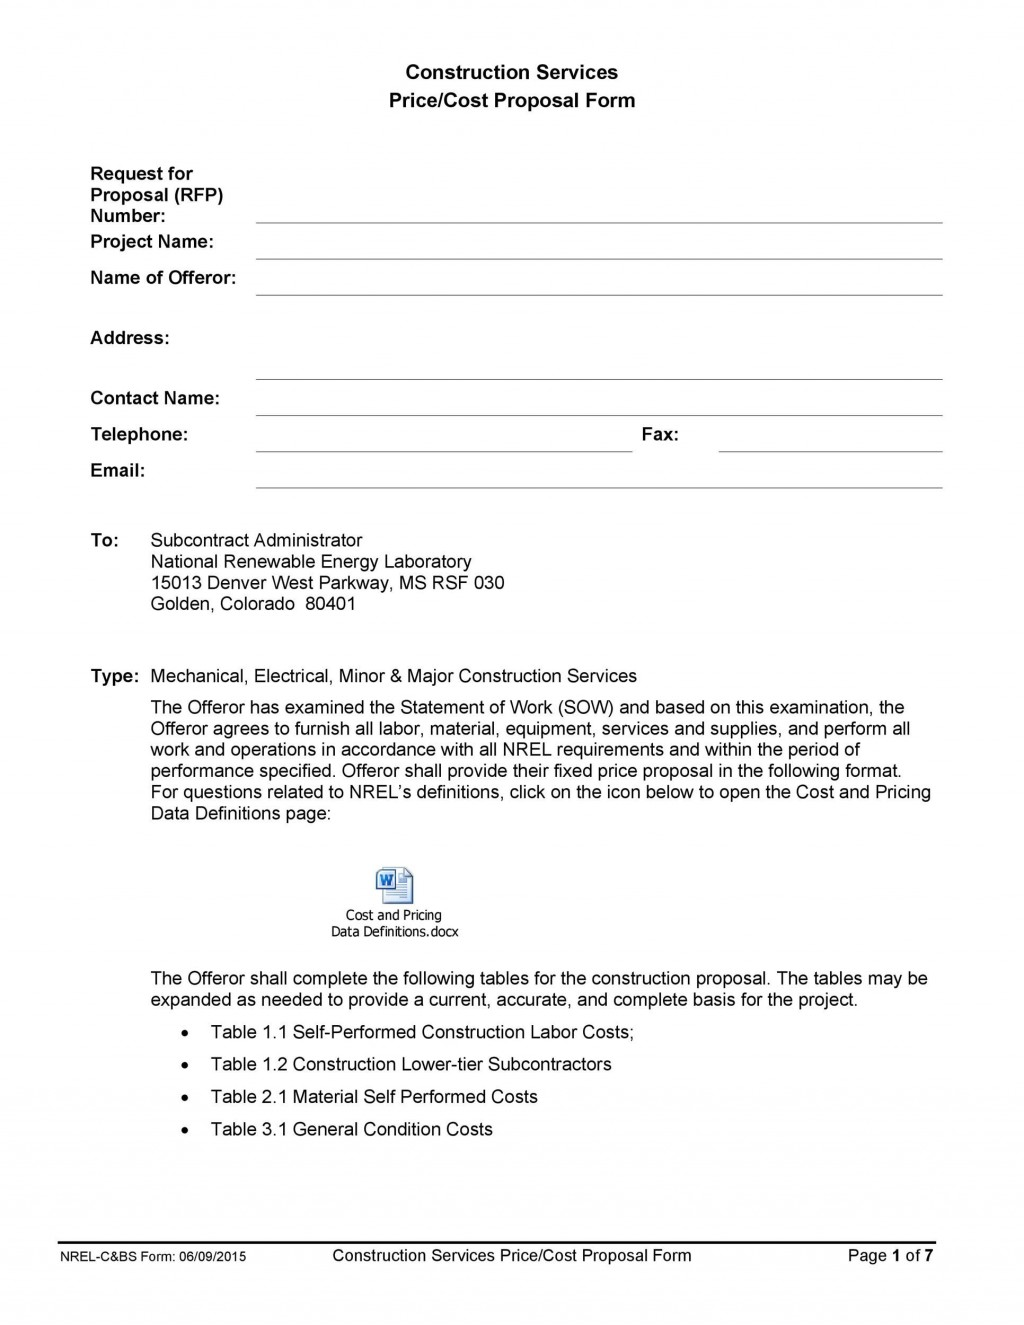 002 Stirring Request For Proposal Rfp Template Construction Picture Large